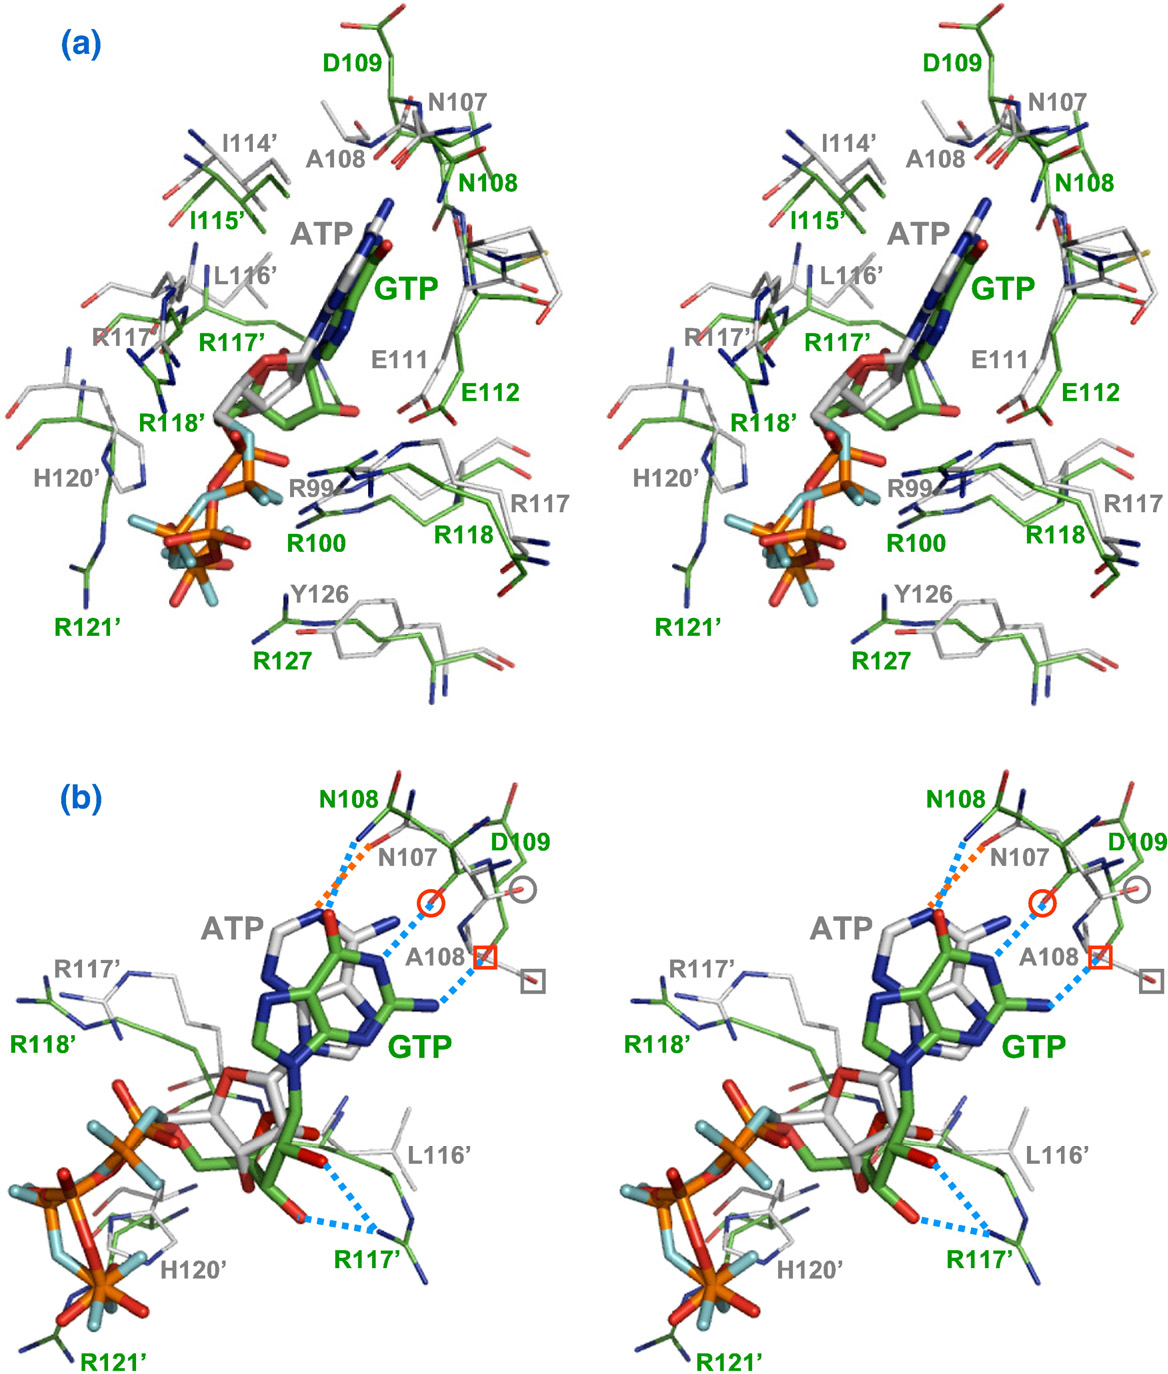 Fig. 5. Comparison between the X. campestris UMPK GTP-binding pocket and the B. anthracis UMPK ATP-binding pocket. (a) Stereo picture displayed from an orientation similar to that in Fig. 4a. The GTP and ATP molecules are shown in stick representation, while the surrounding residues are shown in line representation. Phosphate atoms are shown in orange; nitrogen atoms, in blue; oxygen atoms, in red; carbon atoms in the X. campestris UMPK, in green; and carbon atoms in the B. anthracis UMPK, in gray, except for the phosphate oxygen atoms of ATP, which are shown in cyan. (b) Stereo picture displayed 90° clockwise from (a) showing the distinct binding modes of GTP relative to ATP. H bonds between GTP and X. campestris UMPK are shown as a blue dotted line, while those between ATP and B. anthracis UMPK are shown as a red dotted line. The backbone oxygen atoms of Asn108 and Asp109 of X. campestris UMPK are encircled and boxed in red, while those of the cognate Asn107 and Ala108 residues of B. anthracisUMPK are encircled and boxed in gray.